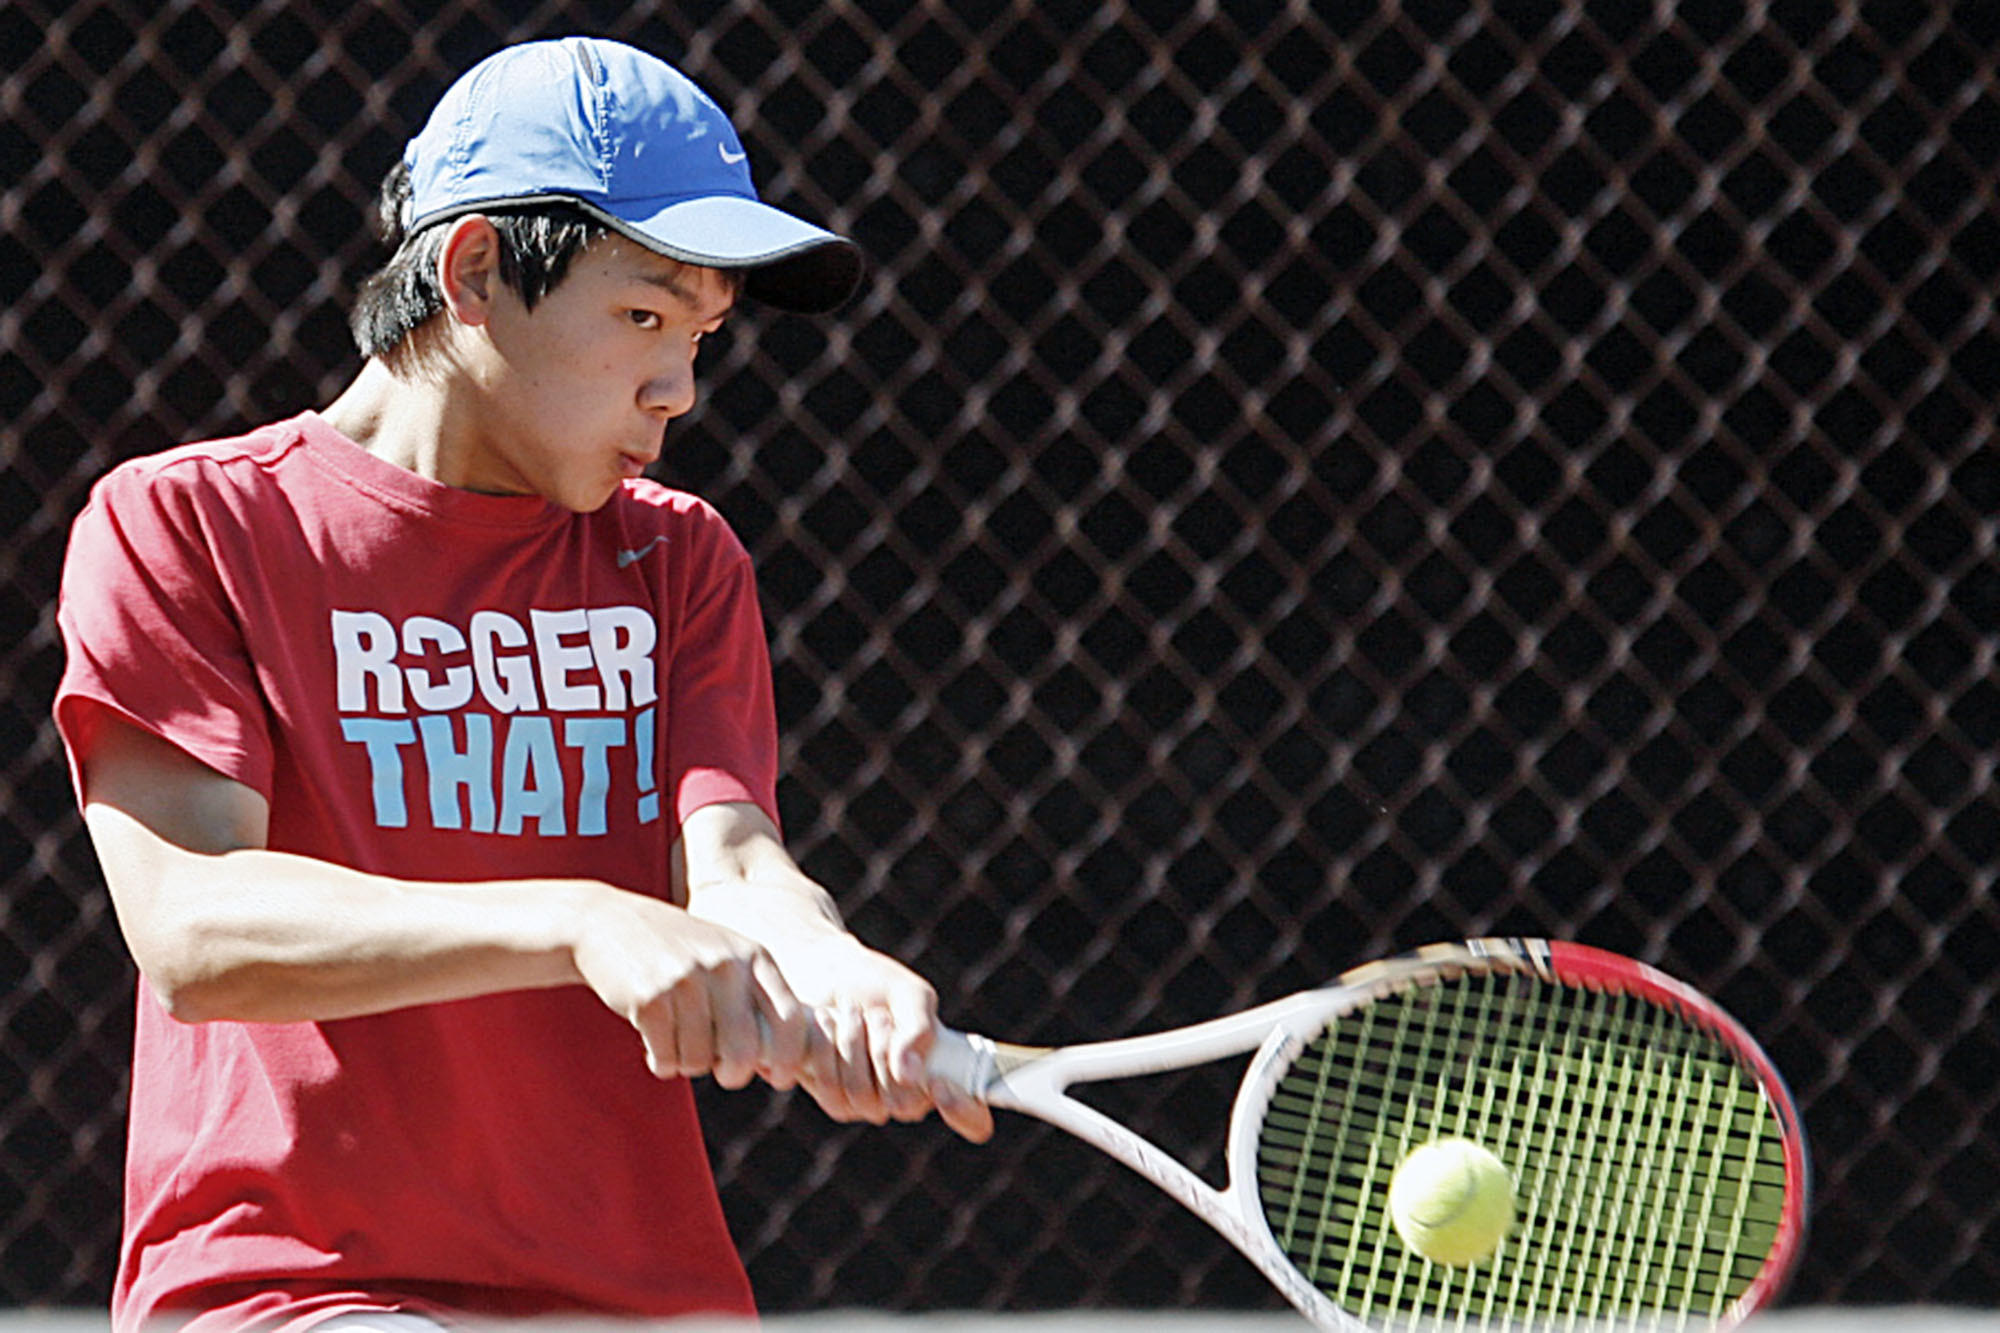 La Cañada's Ryan Lee swings at the ball during a match against San Marino's Daniel Gealer at La Cañada High School on Wednesday, April 17, 2013.